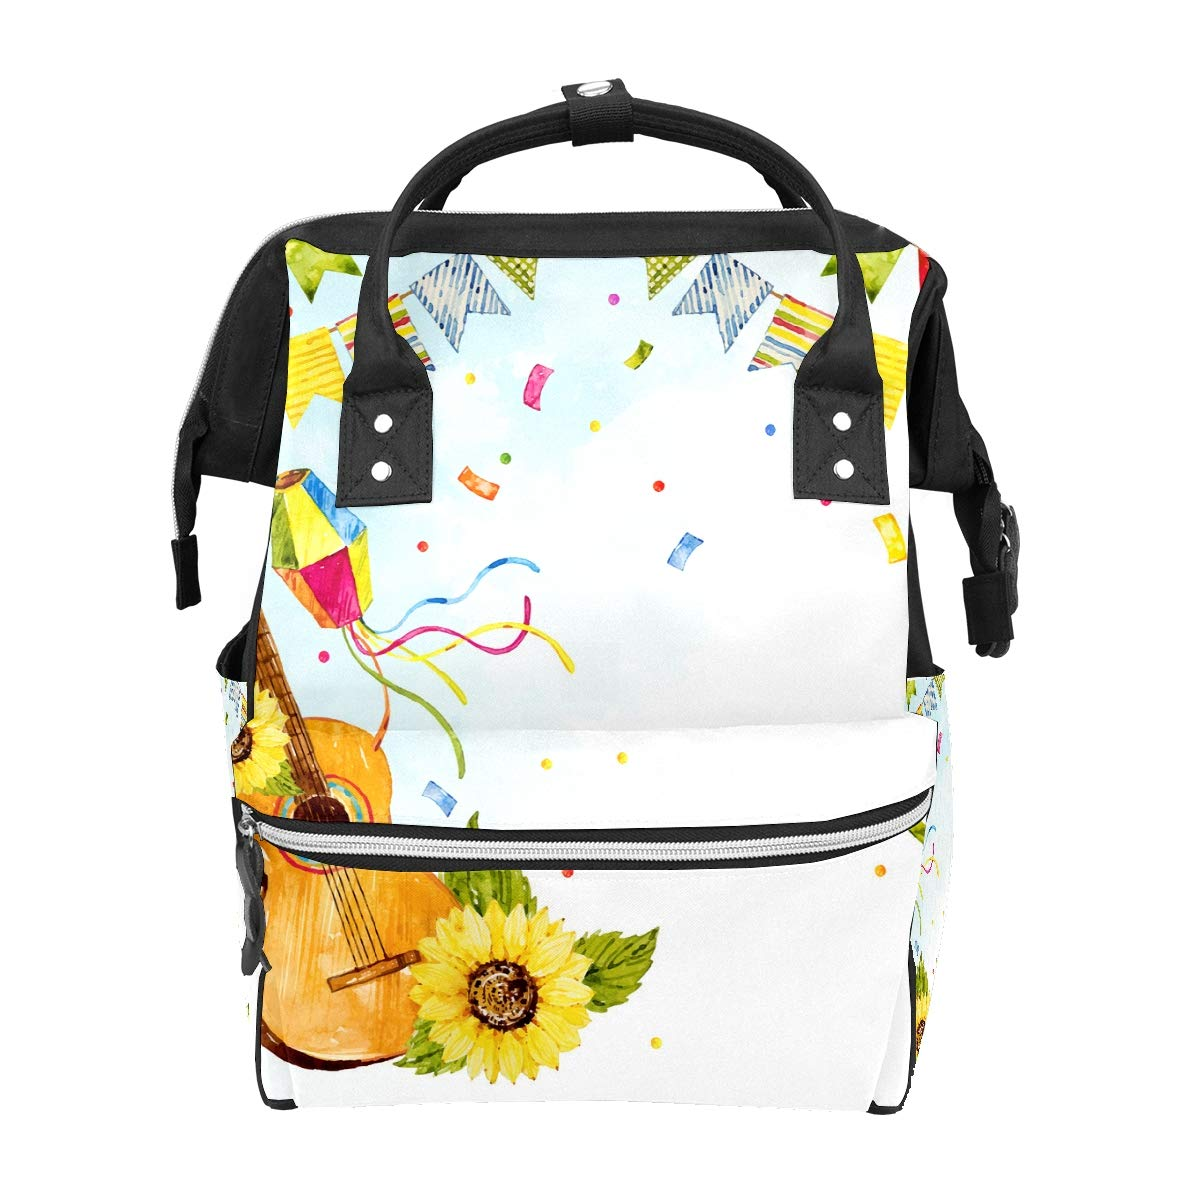 Diaper Bag Backpack, Music Sunflower Guitar Multifunction Travel Back Pack Baby Changing Bags, Large Capacity, Waterproof and Stylish